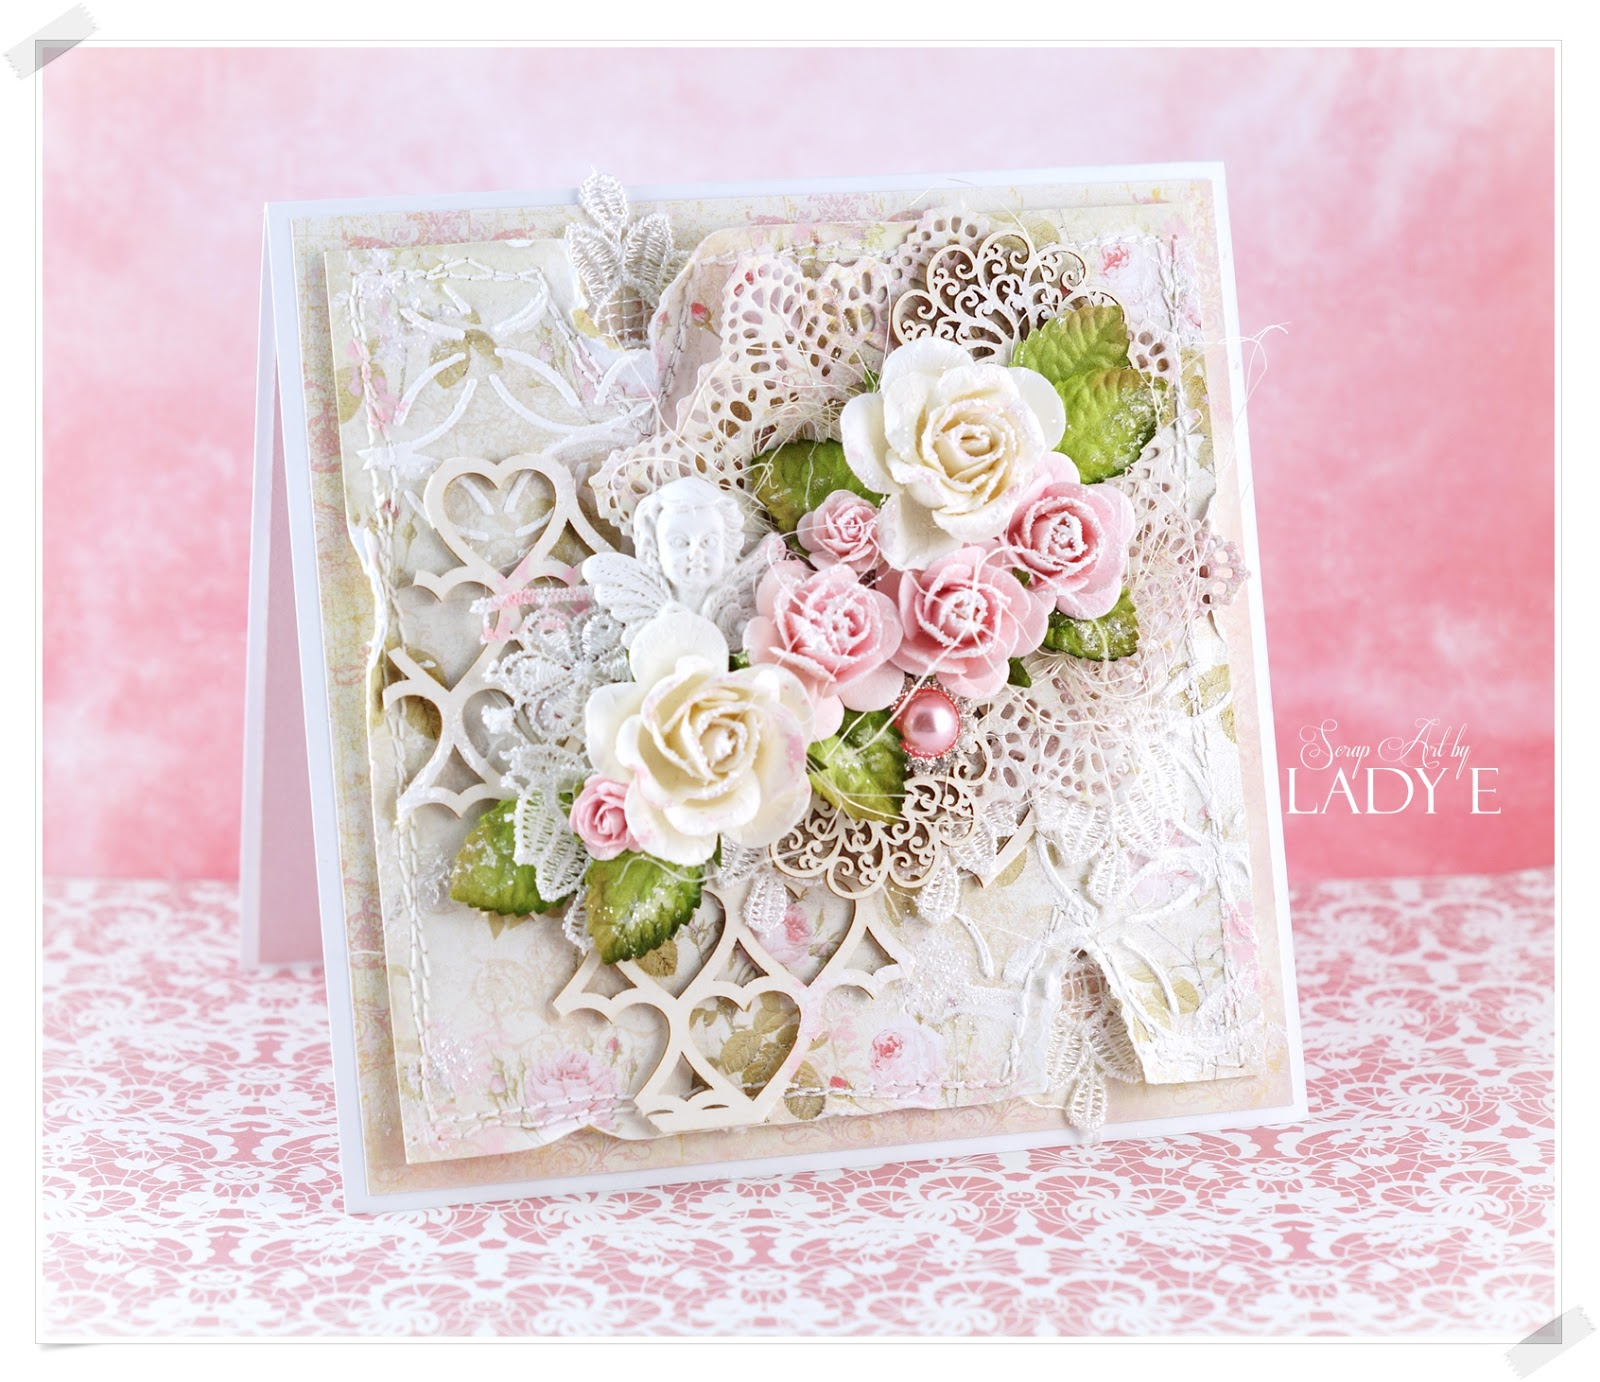 Wild Orchid Crafts: Romantic Shabby Chic Card & Video Tutorial